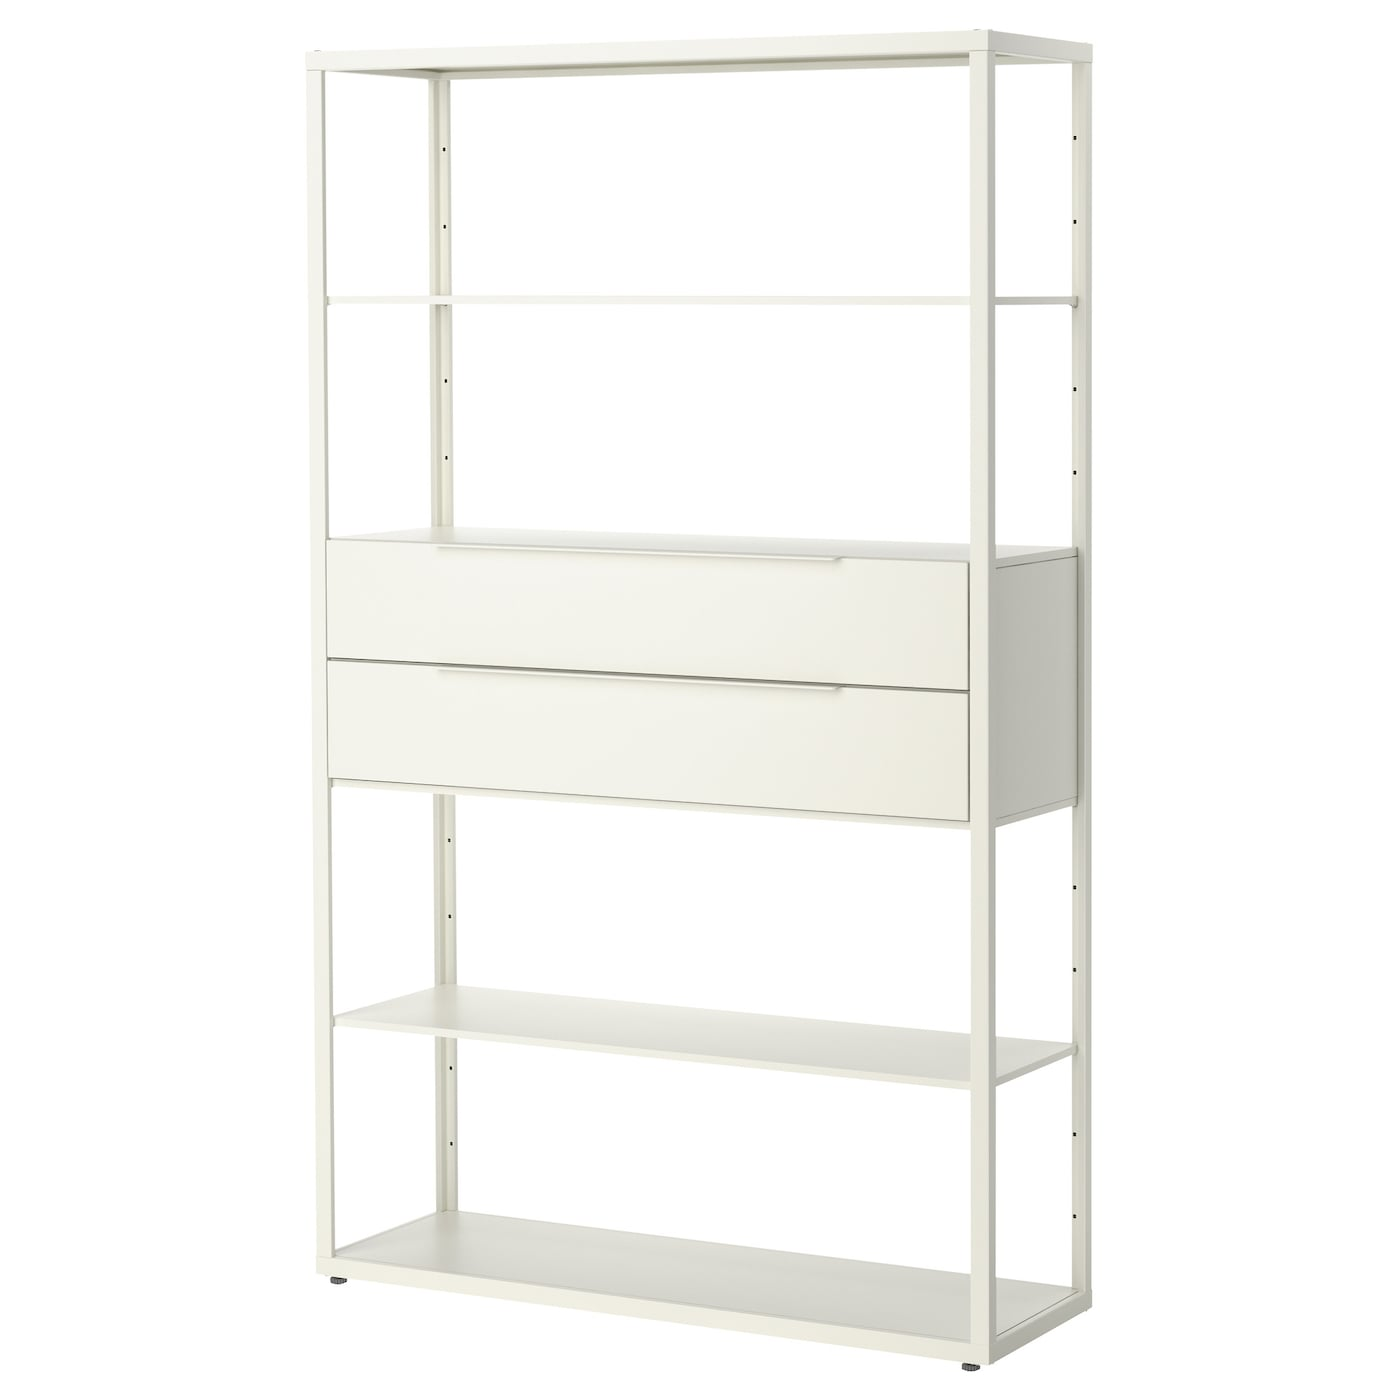 "FJ""LKINGE Shelving unit with drawers White 118x193 cm IKEA"